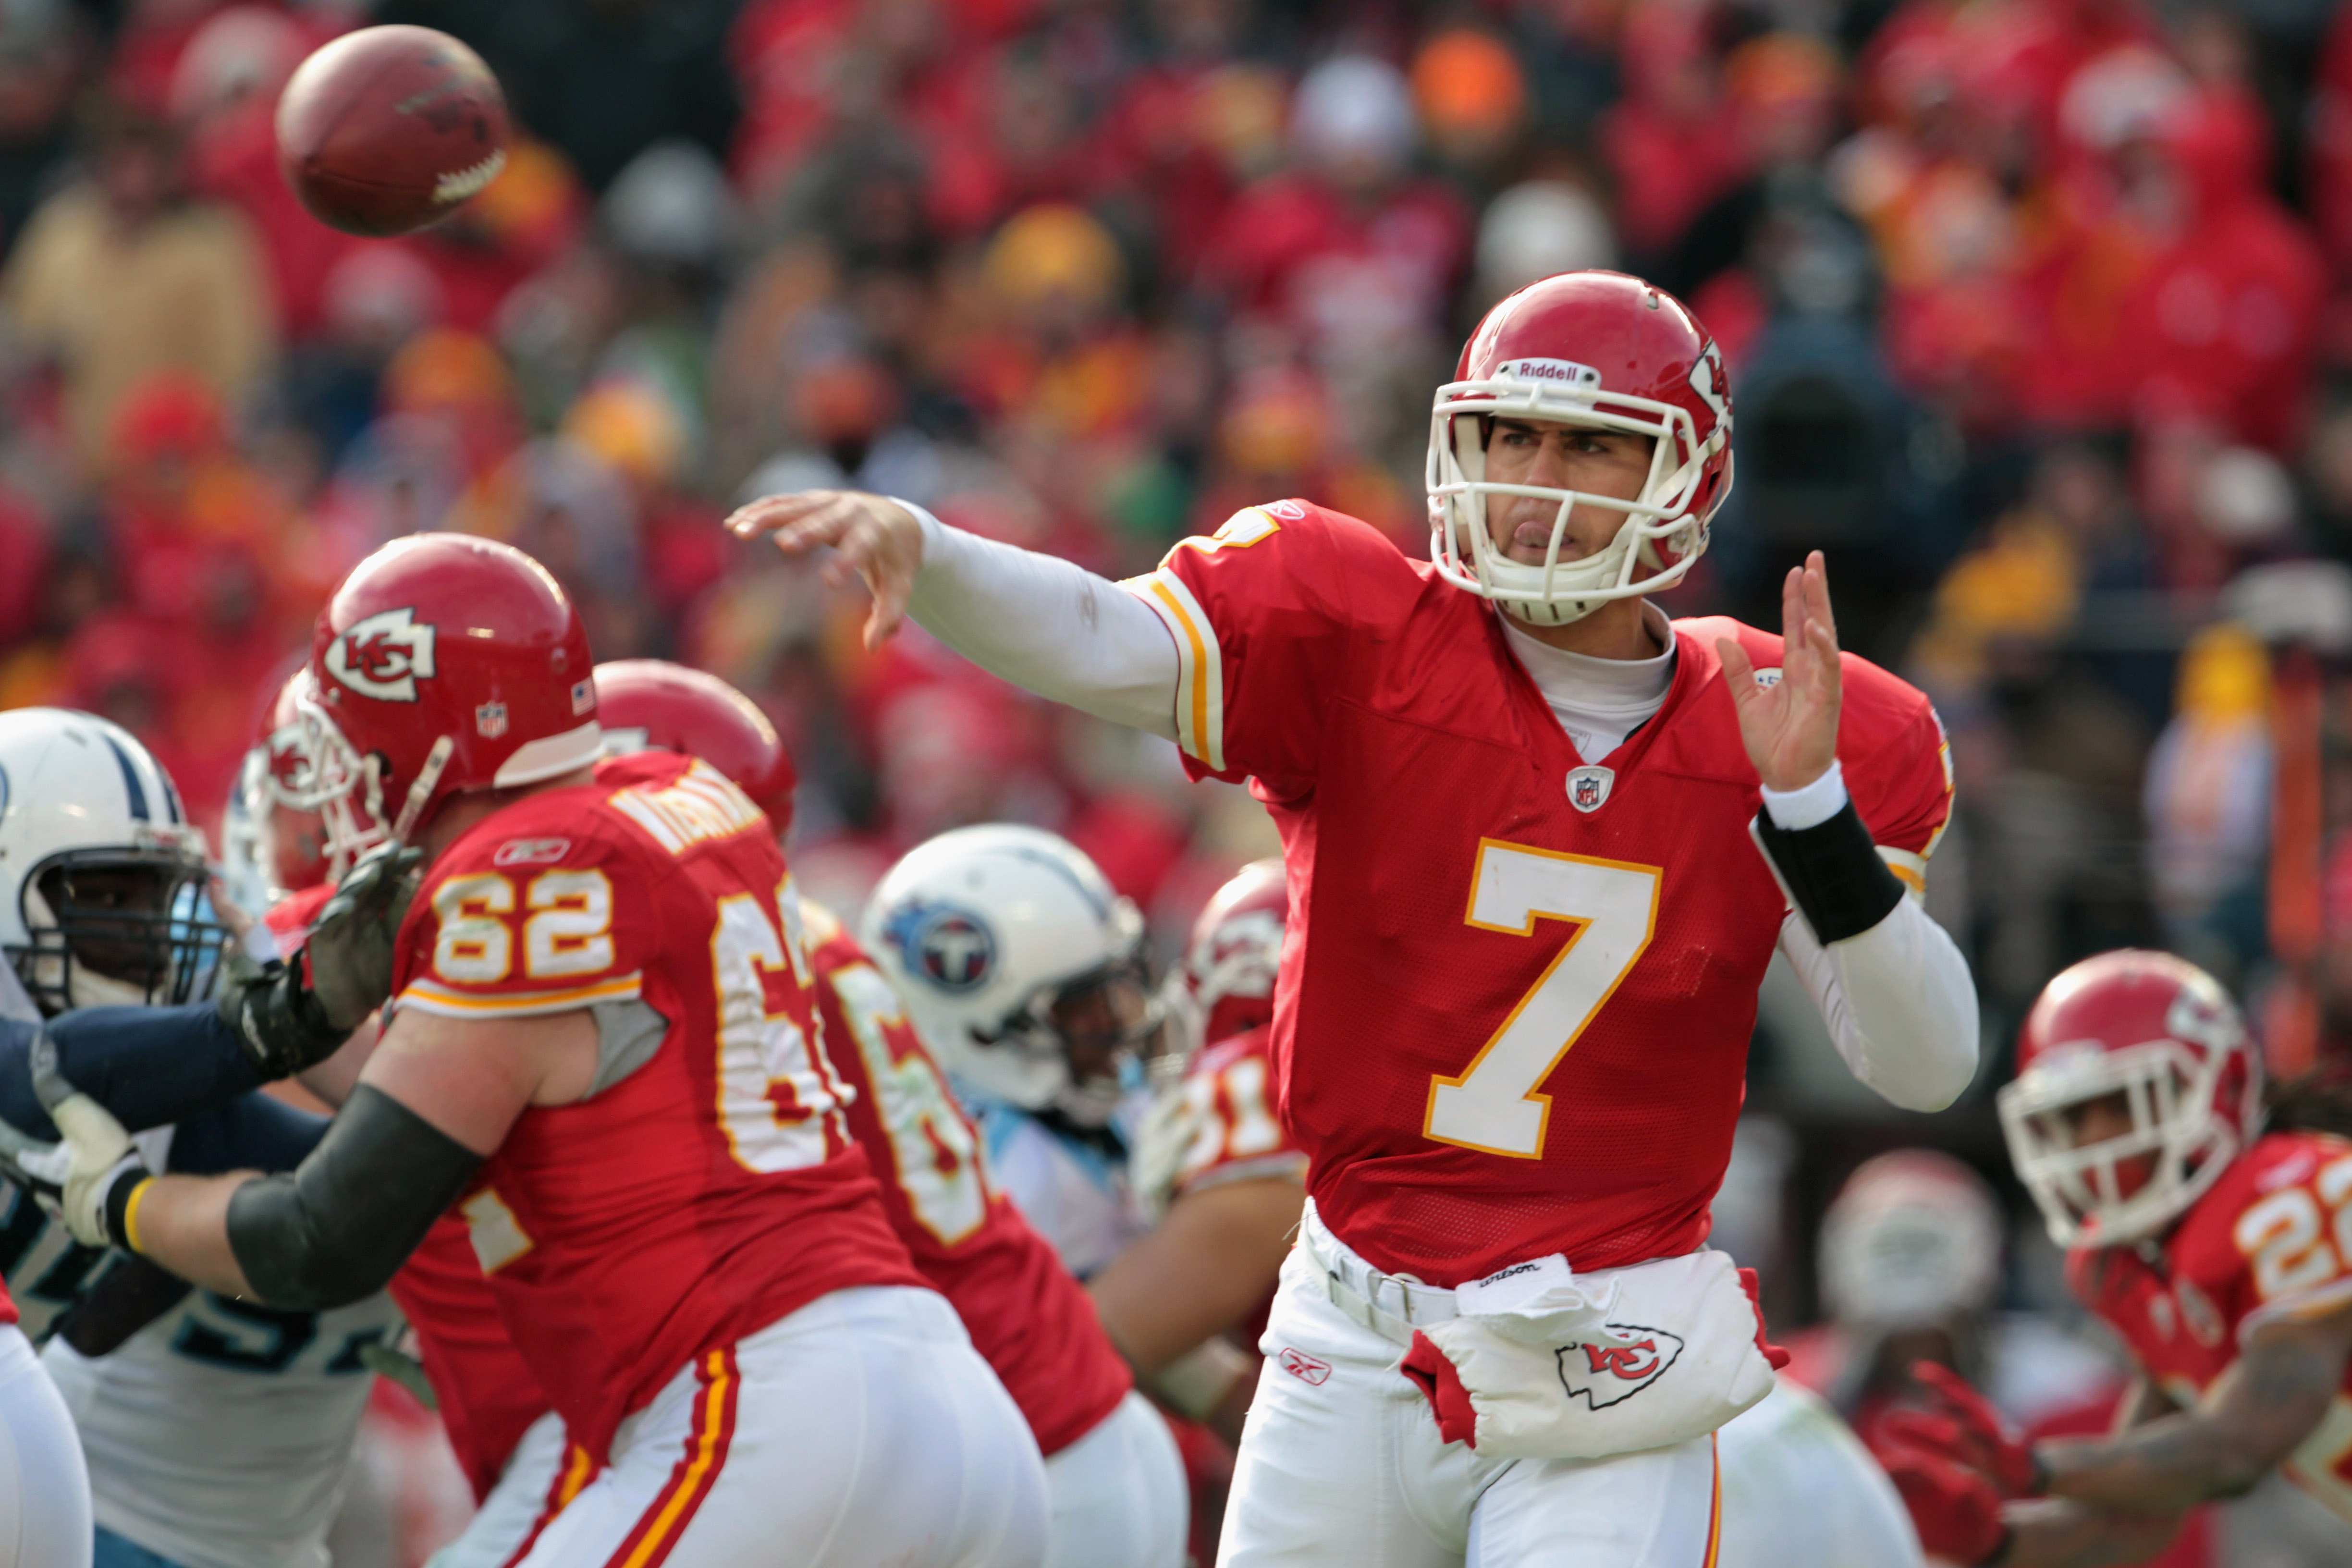 KANSAS CITY, MO - DECEMBER 26:  Quarterback Matt Cassel #7 of the Kansas City Chiefs passes during the game against the Tennessee Titans on December 26, 2010 at Arrowhead Stadium in Kansas City, Missouri.  (Photo by Jamie Squire/Getty Images)